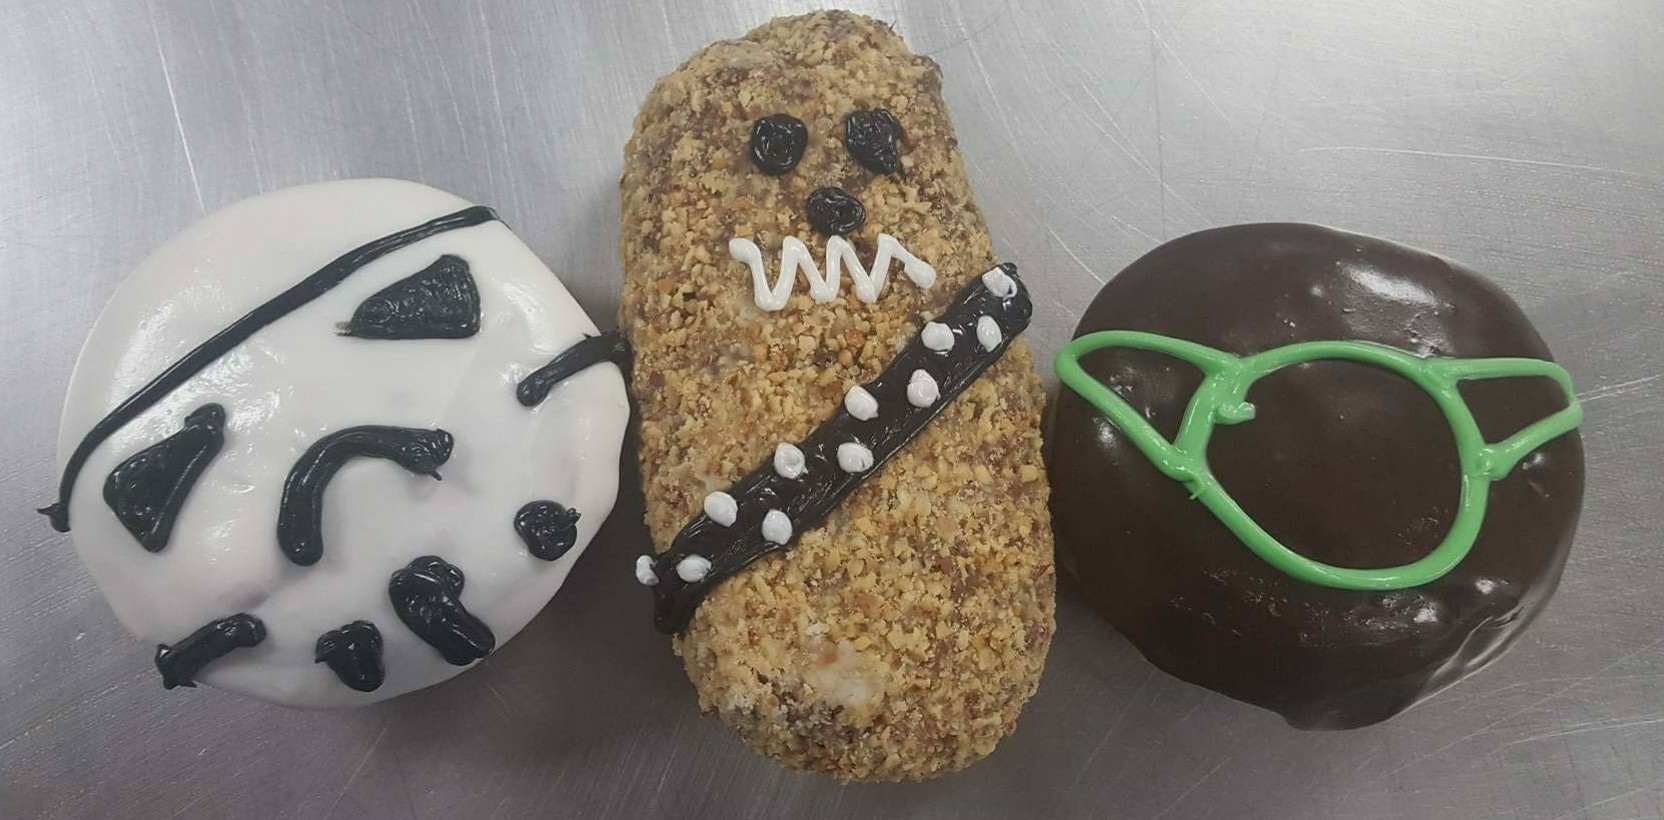 Paula's is rolling out three doughnuts in honor of May 4, a date significant to 'Star Wars' fans. (Photo courtesy of Paula's Donuts.)